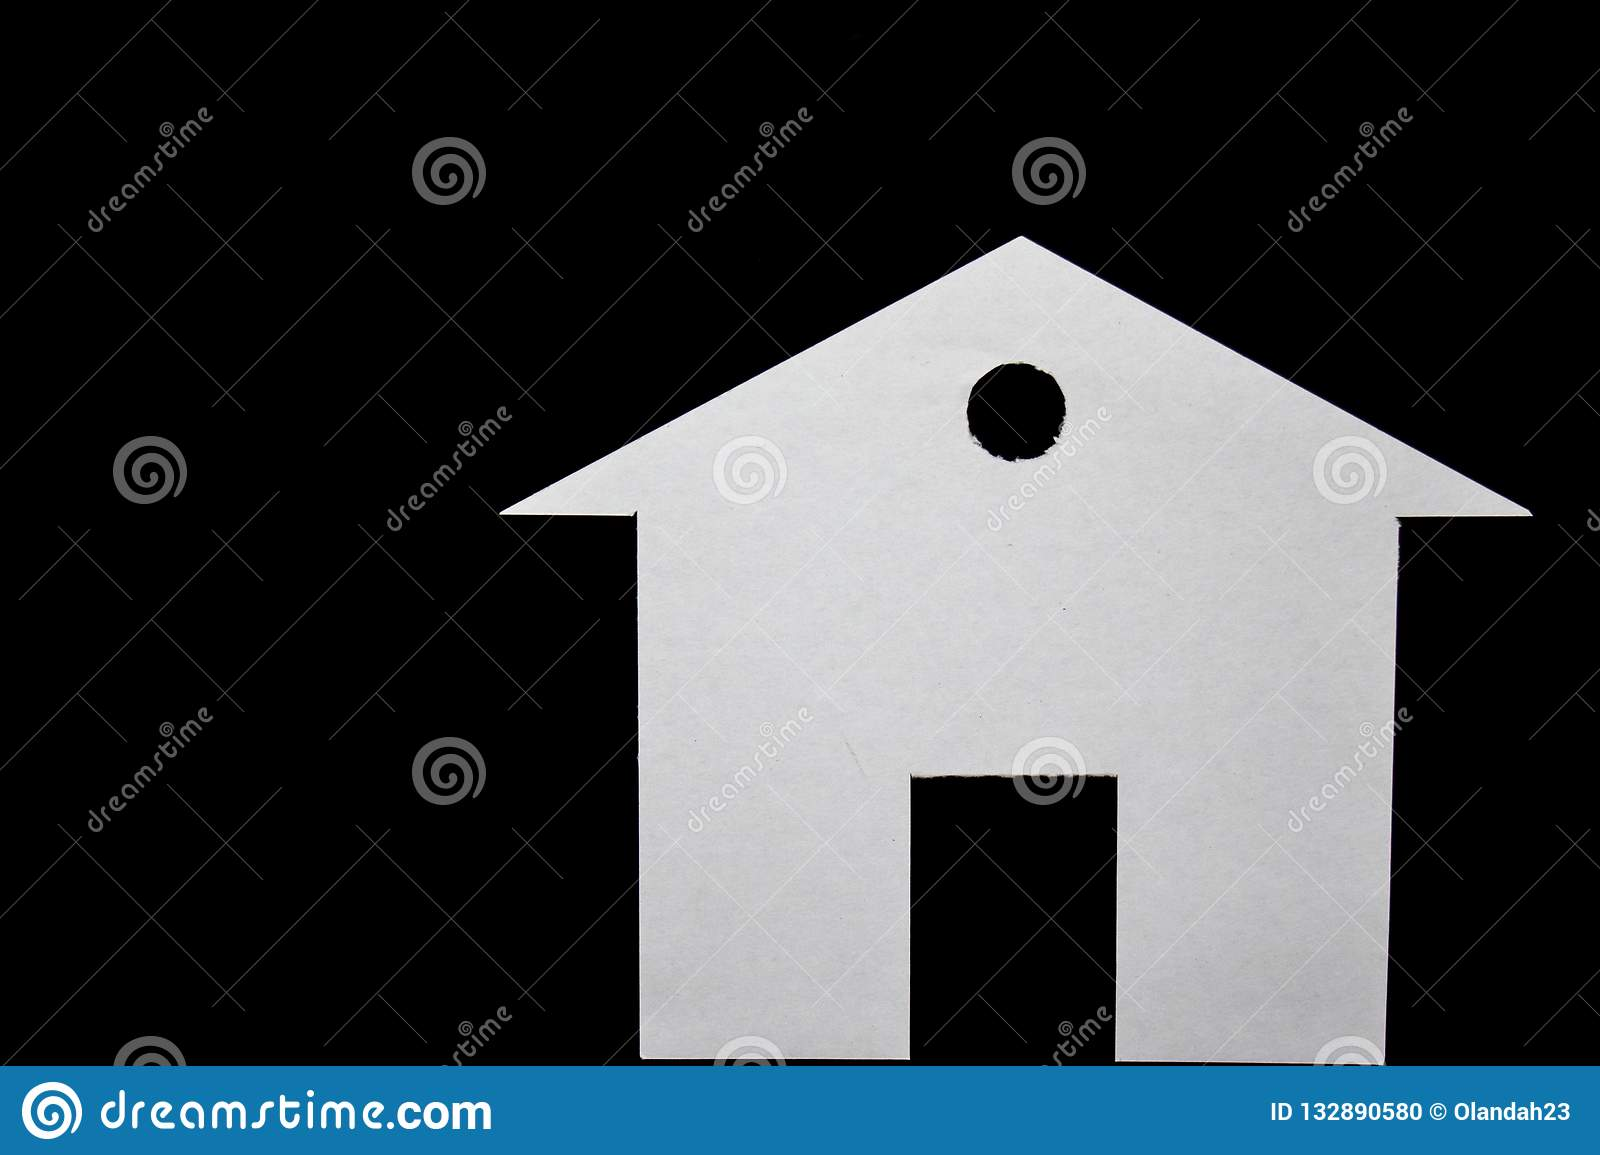 Concept of house in paper on black background. Horizontal composition. Top view.